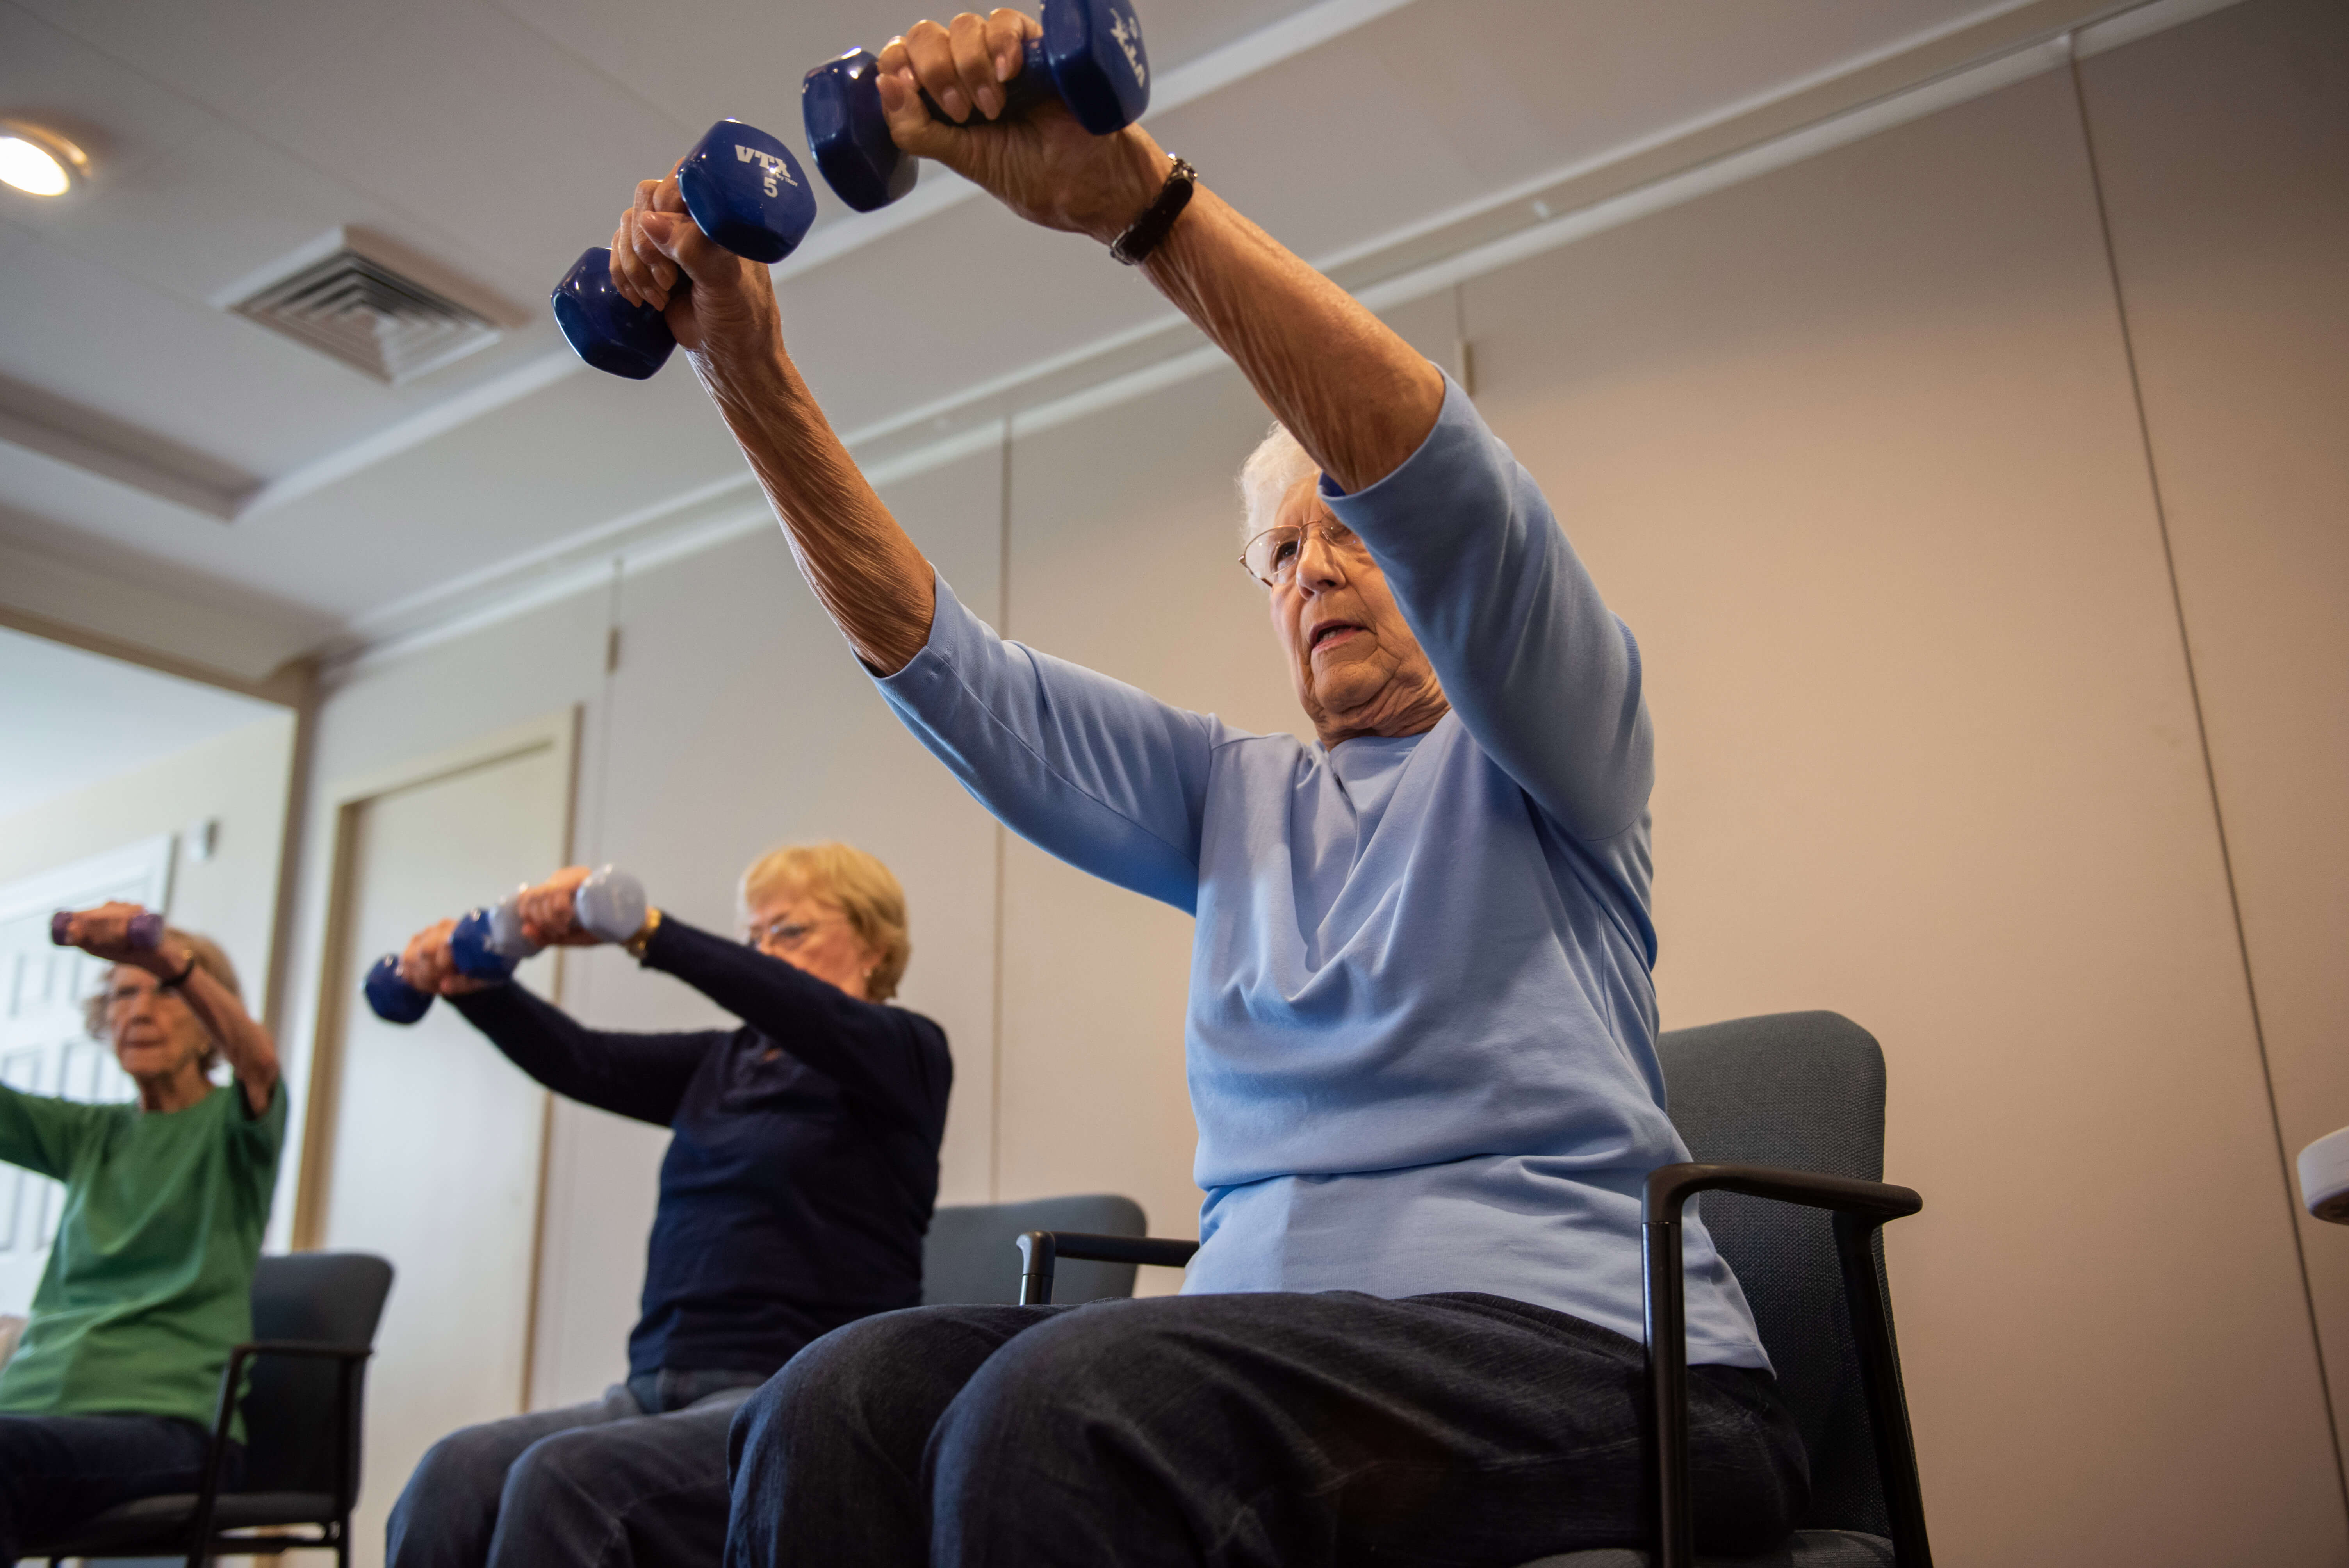 Senior stays fit to help prevent falls in the home